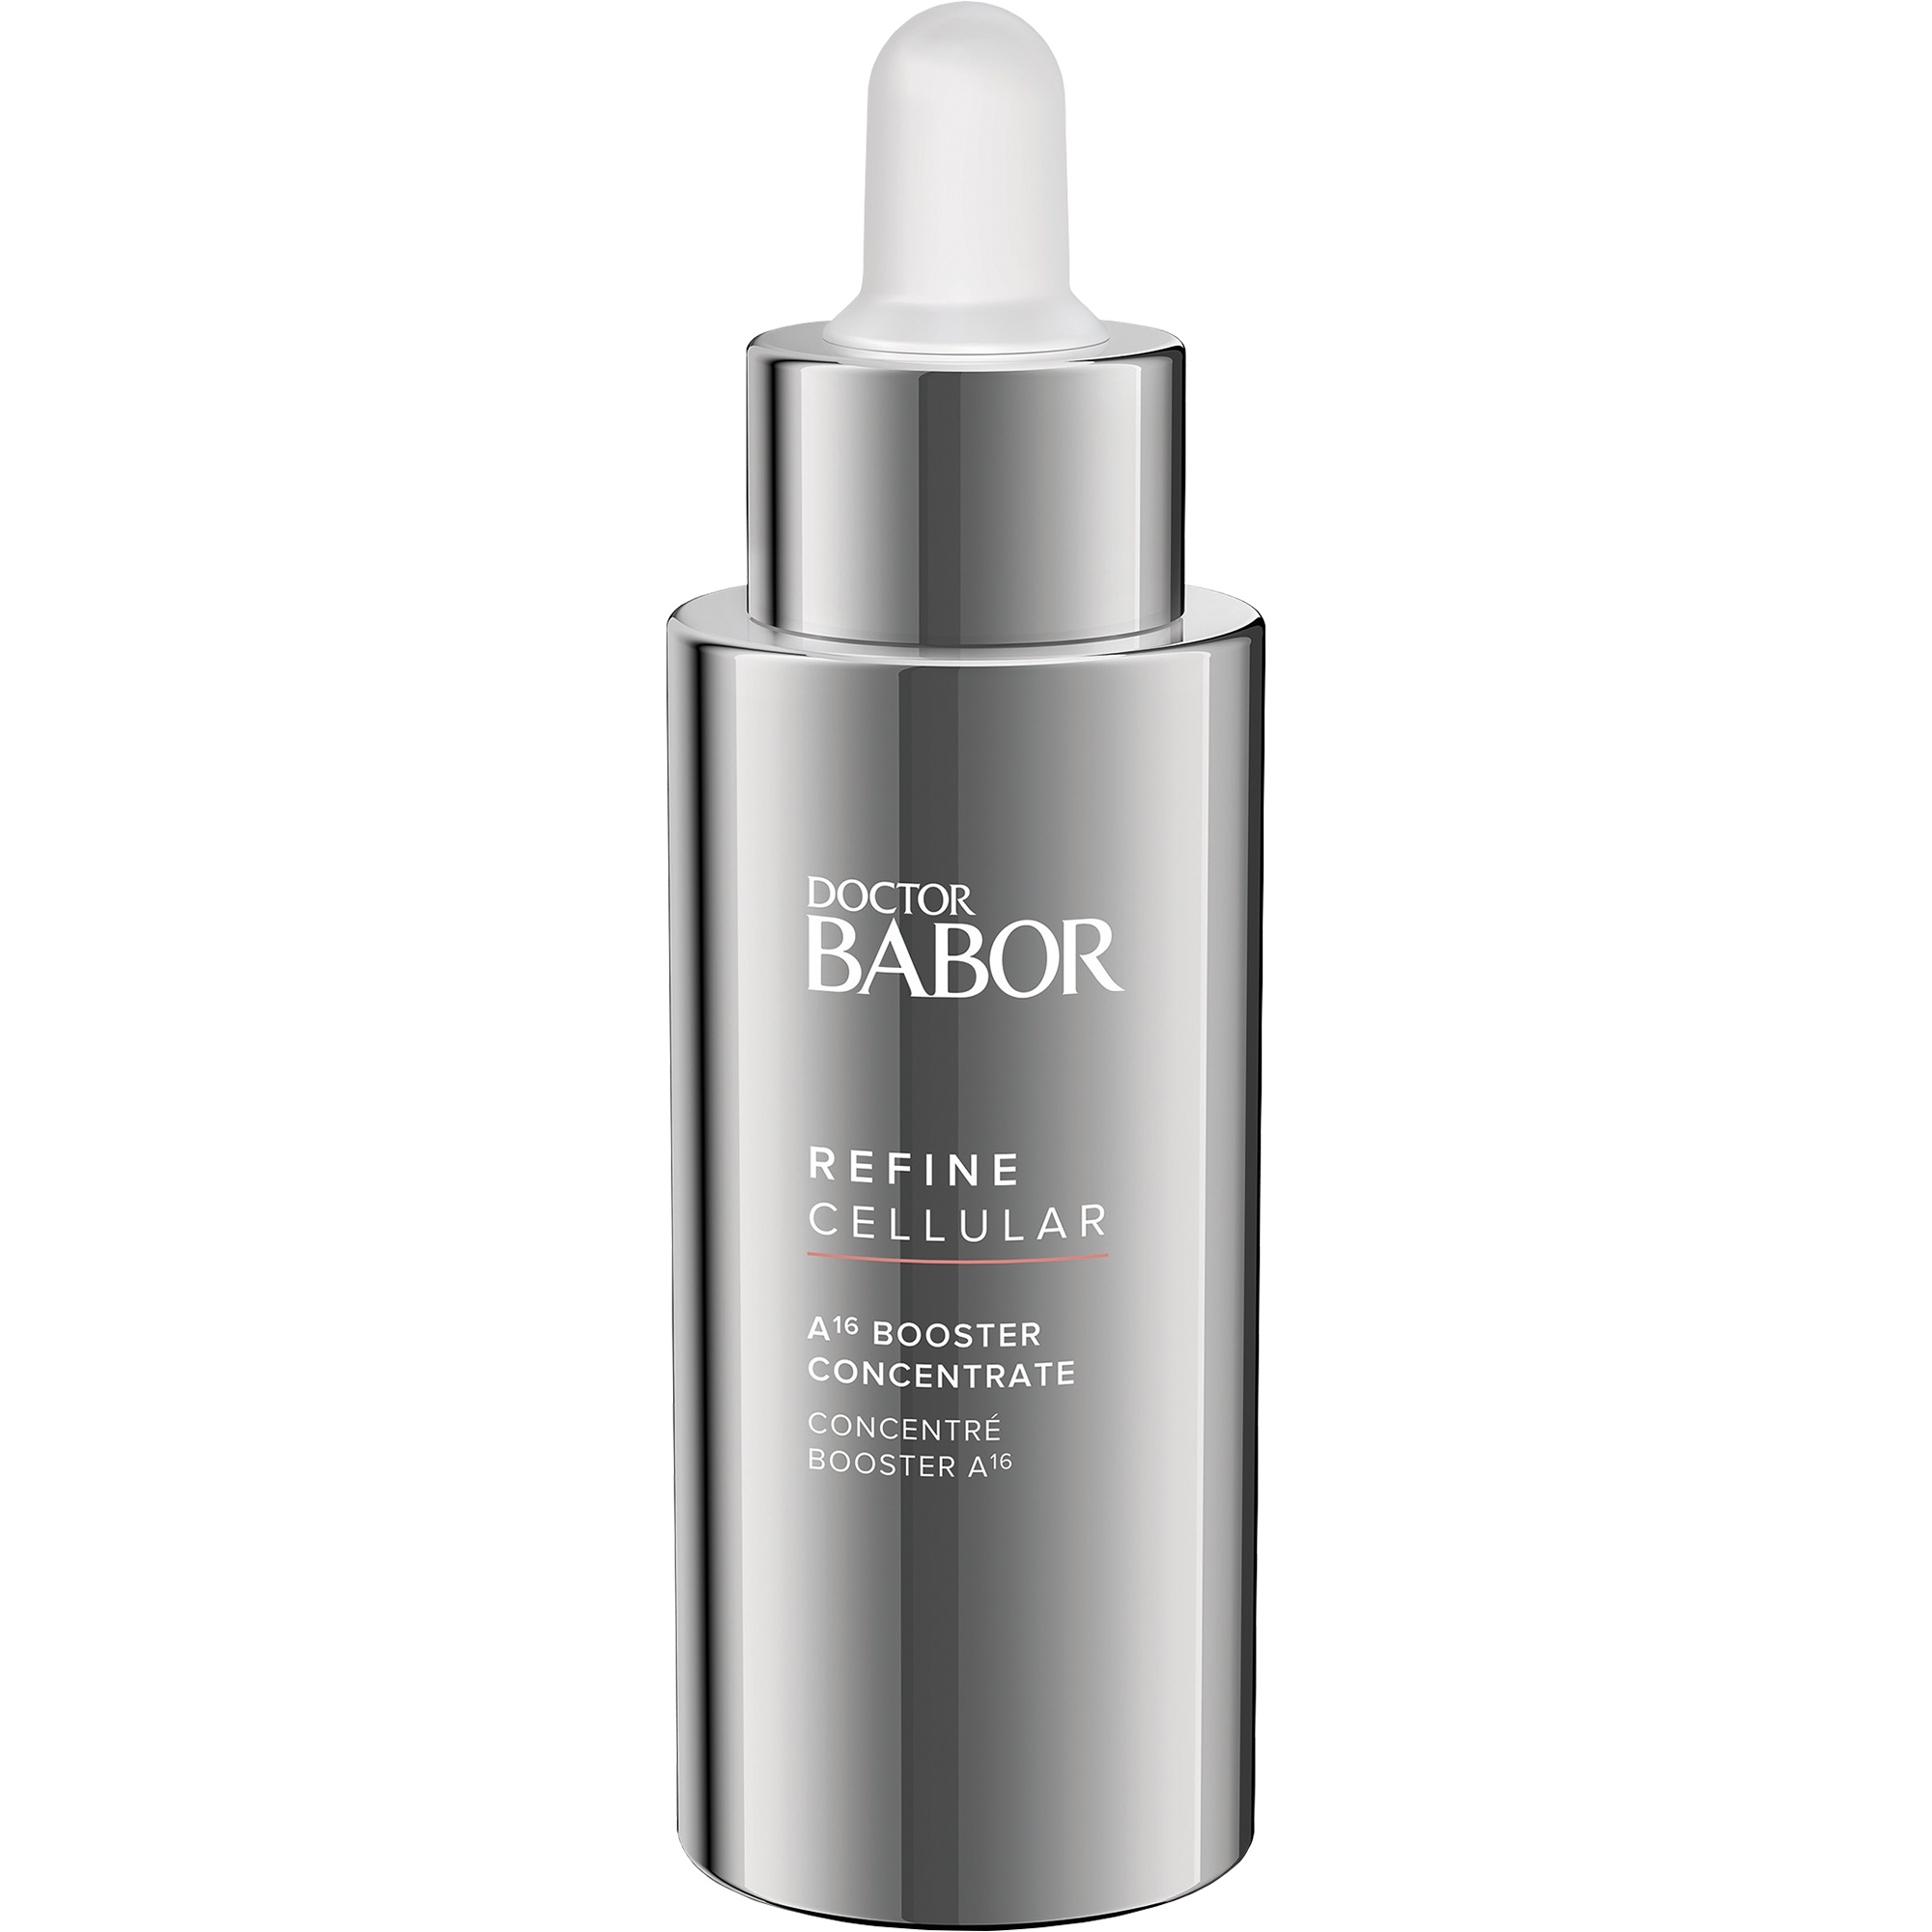 Bilde av Doctor Babor Refine Cellular A16 Booster Concentrate 200 Ml